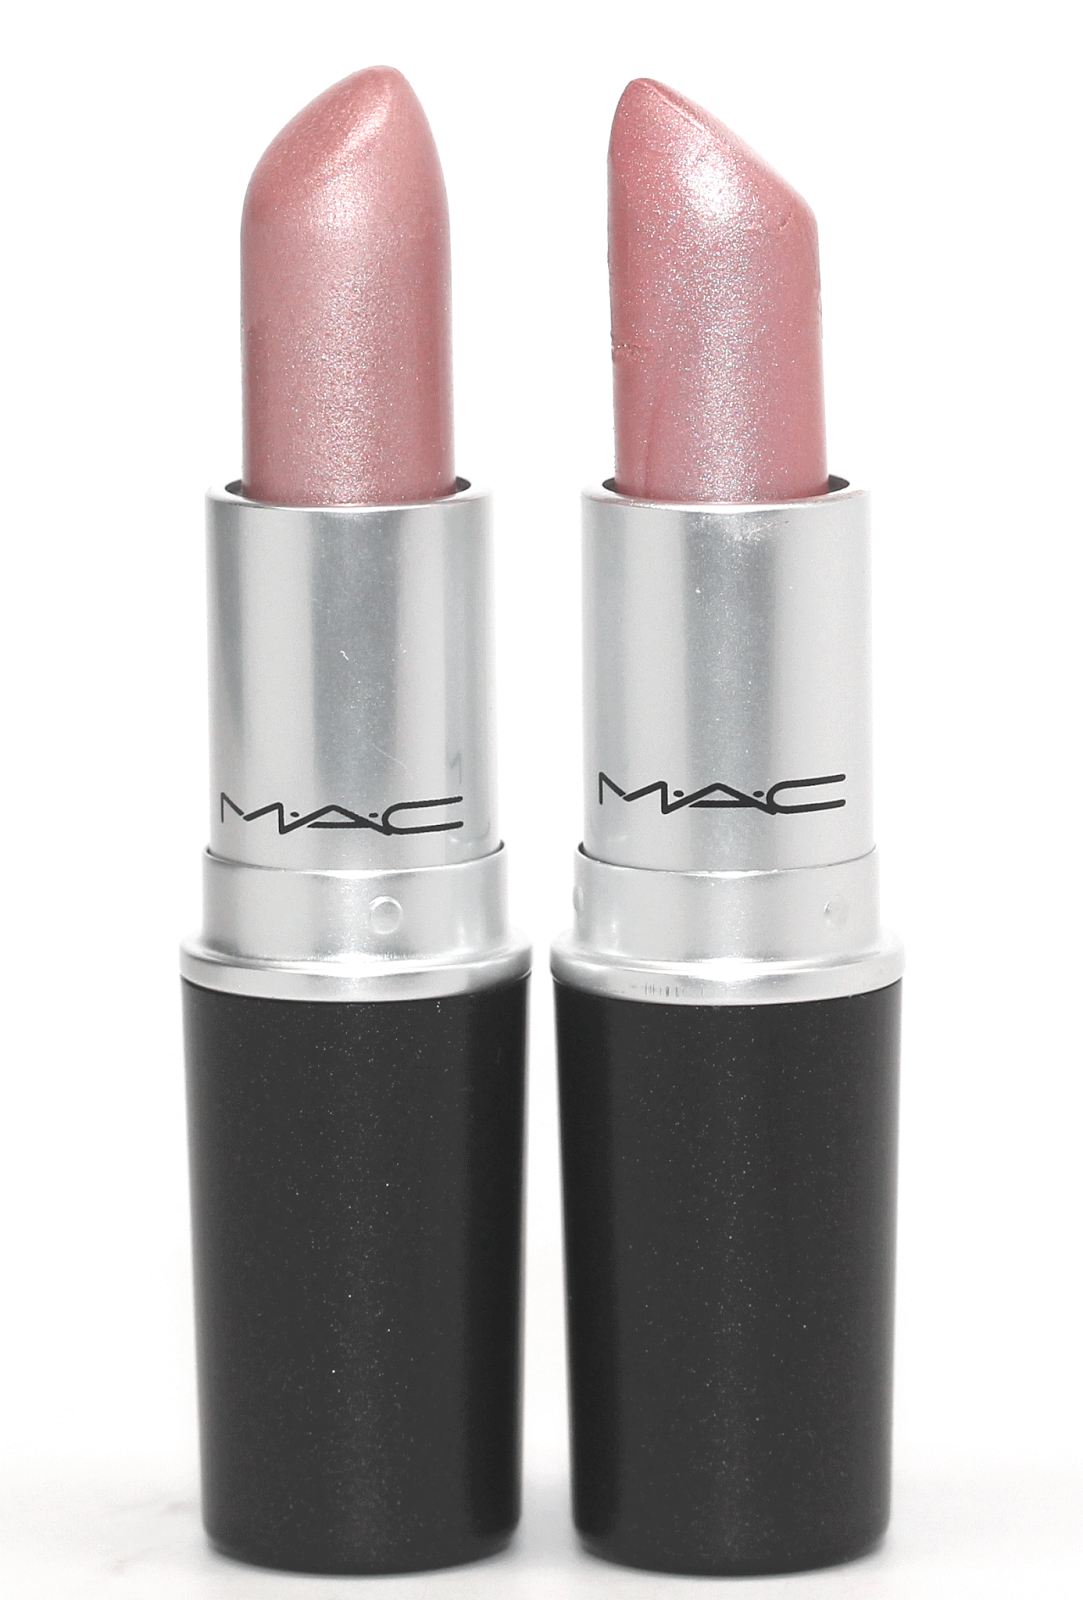 Makeup, Beauty & Fashion: MAC COSMETICS LIPSTICK COLLECTION